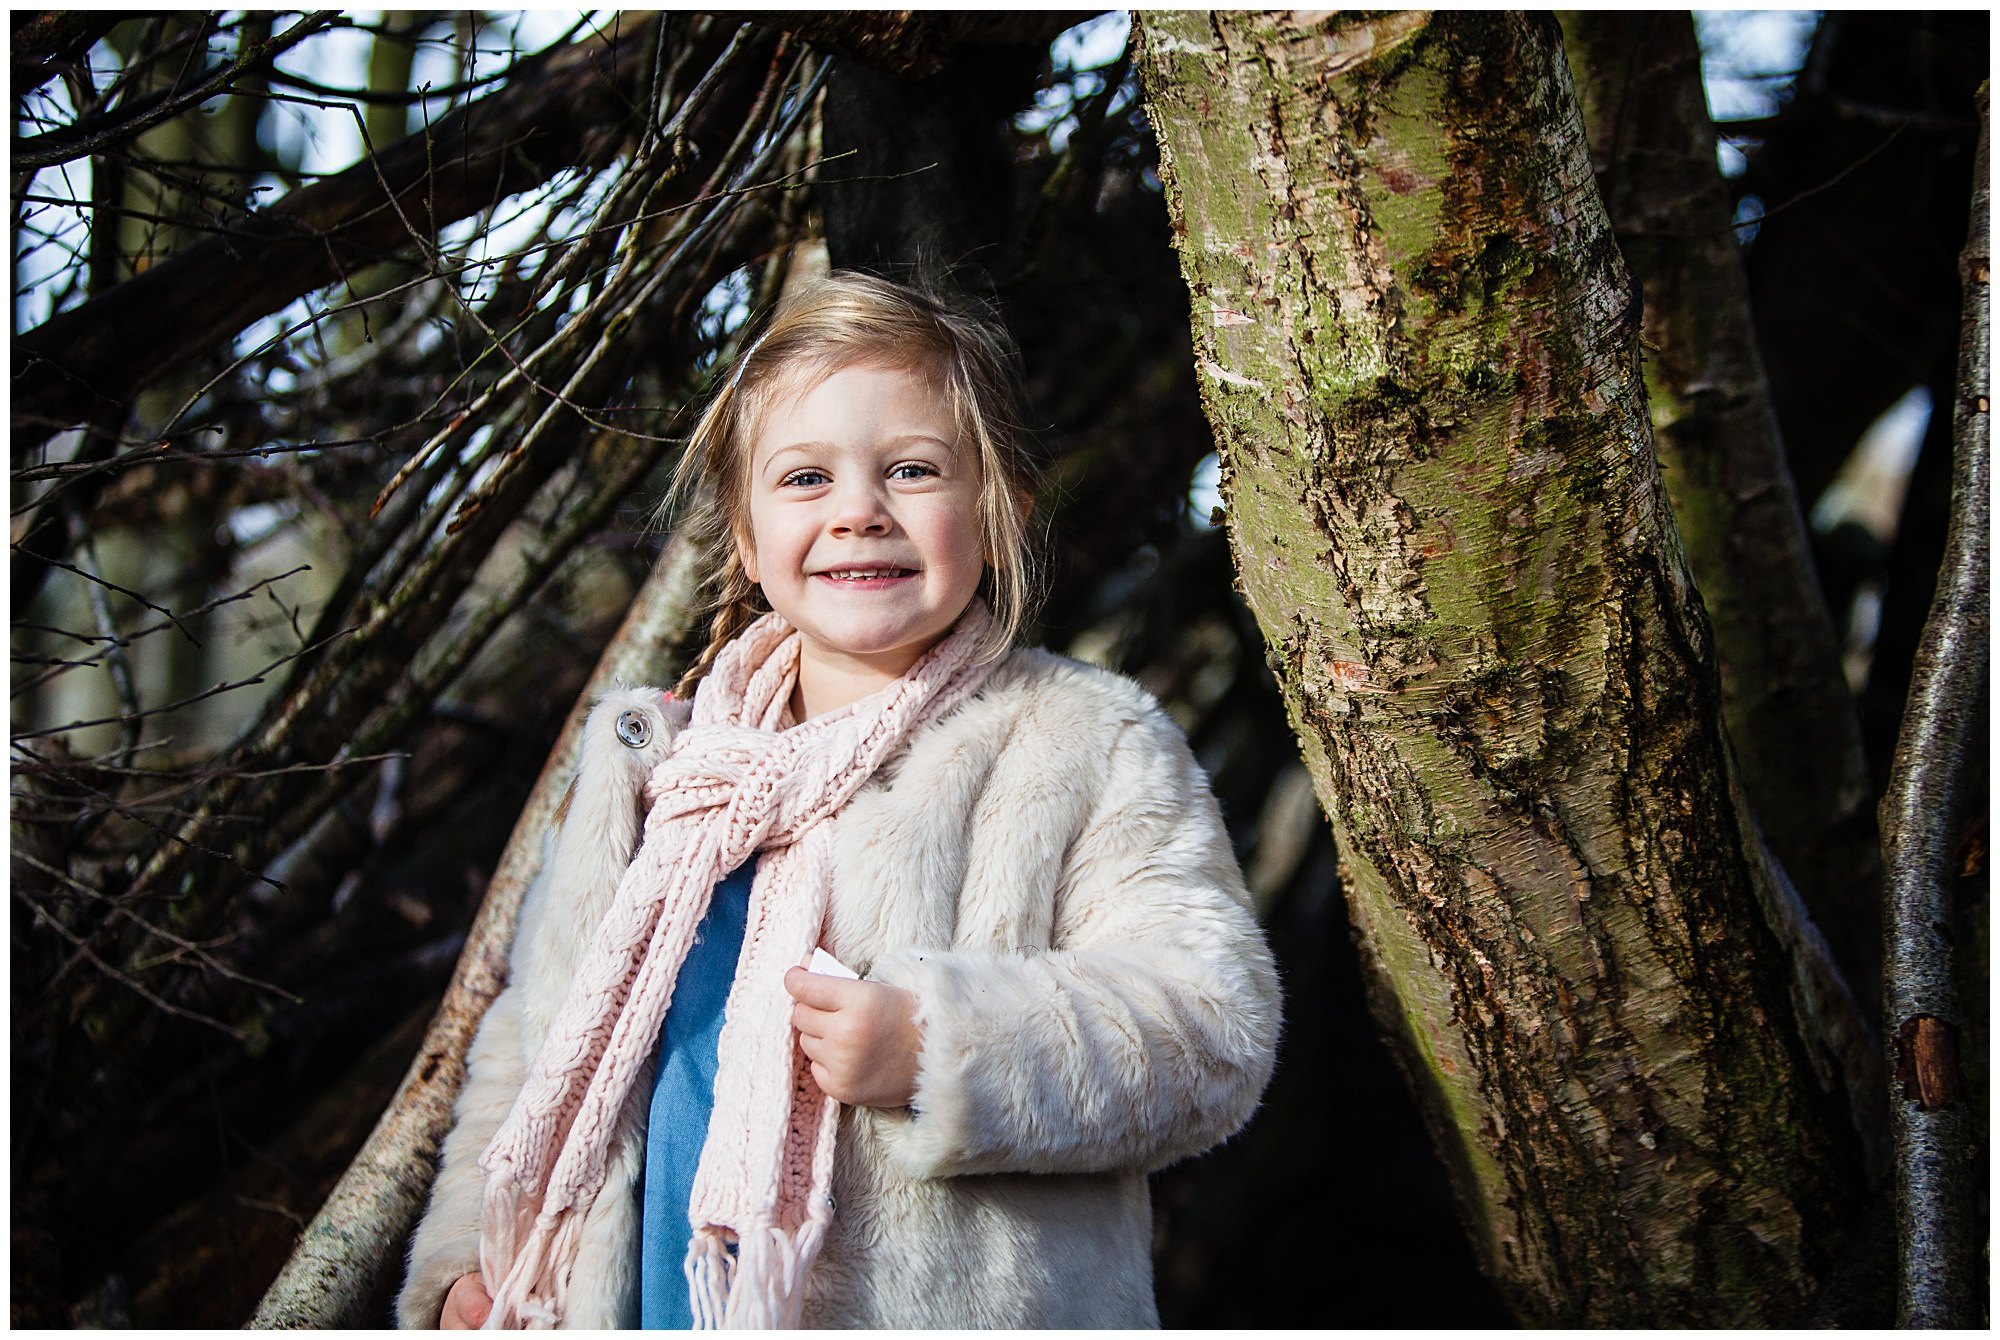 little girl looking happy smiling in a stick den